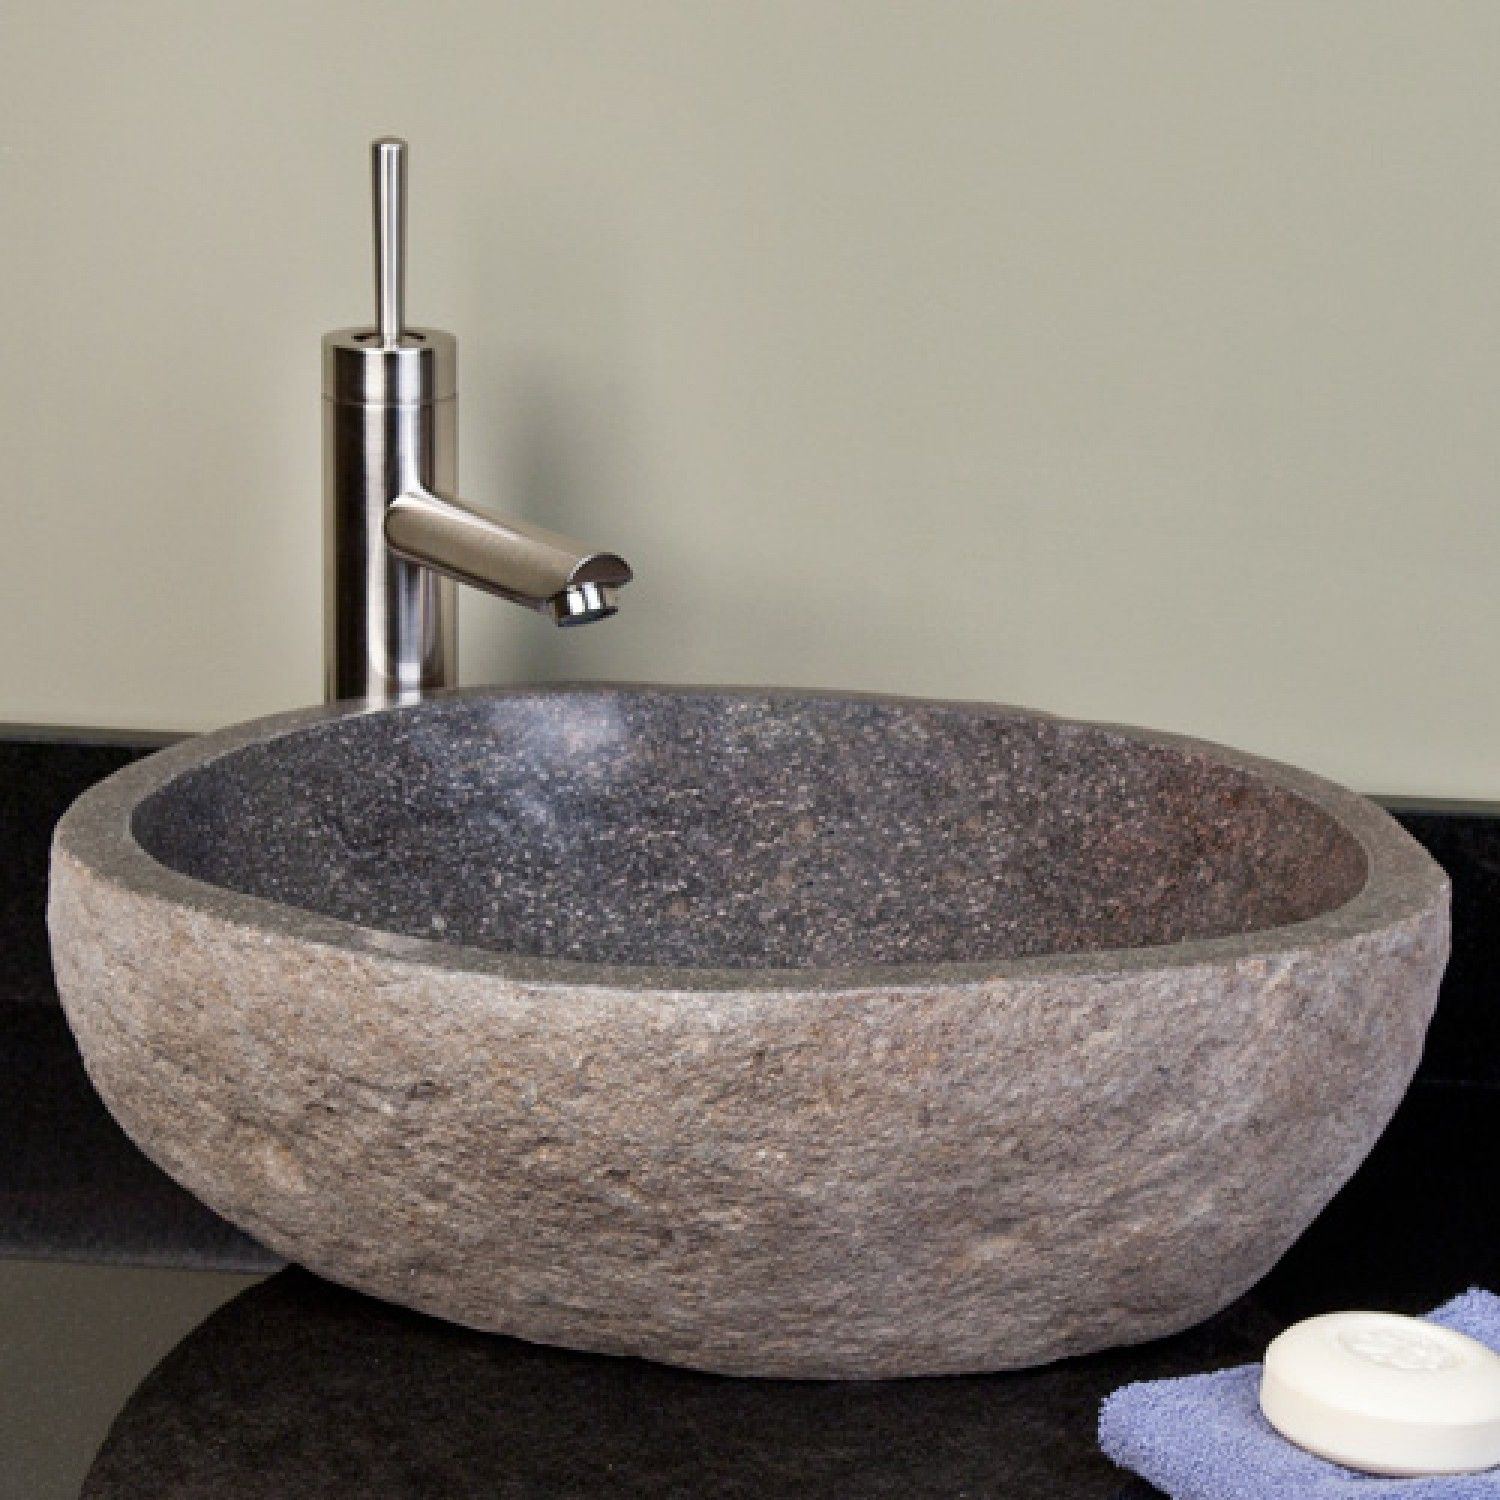 Stone vessel bathroom